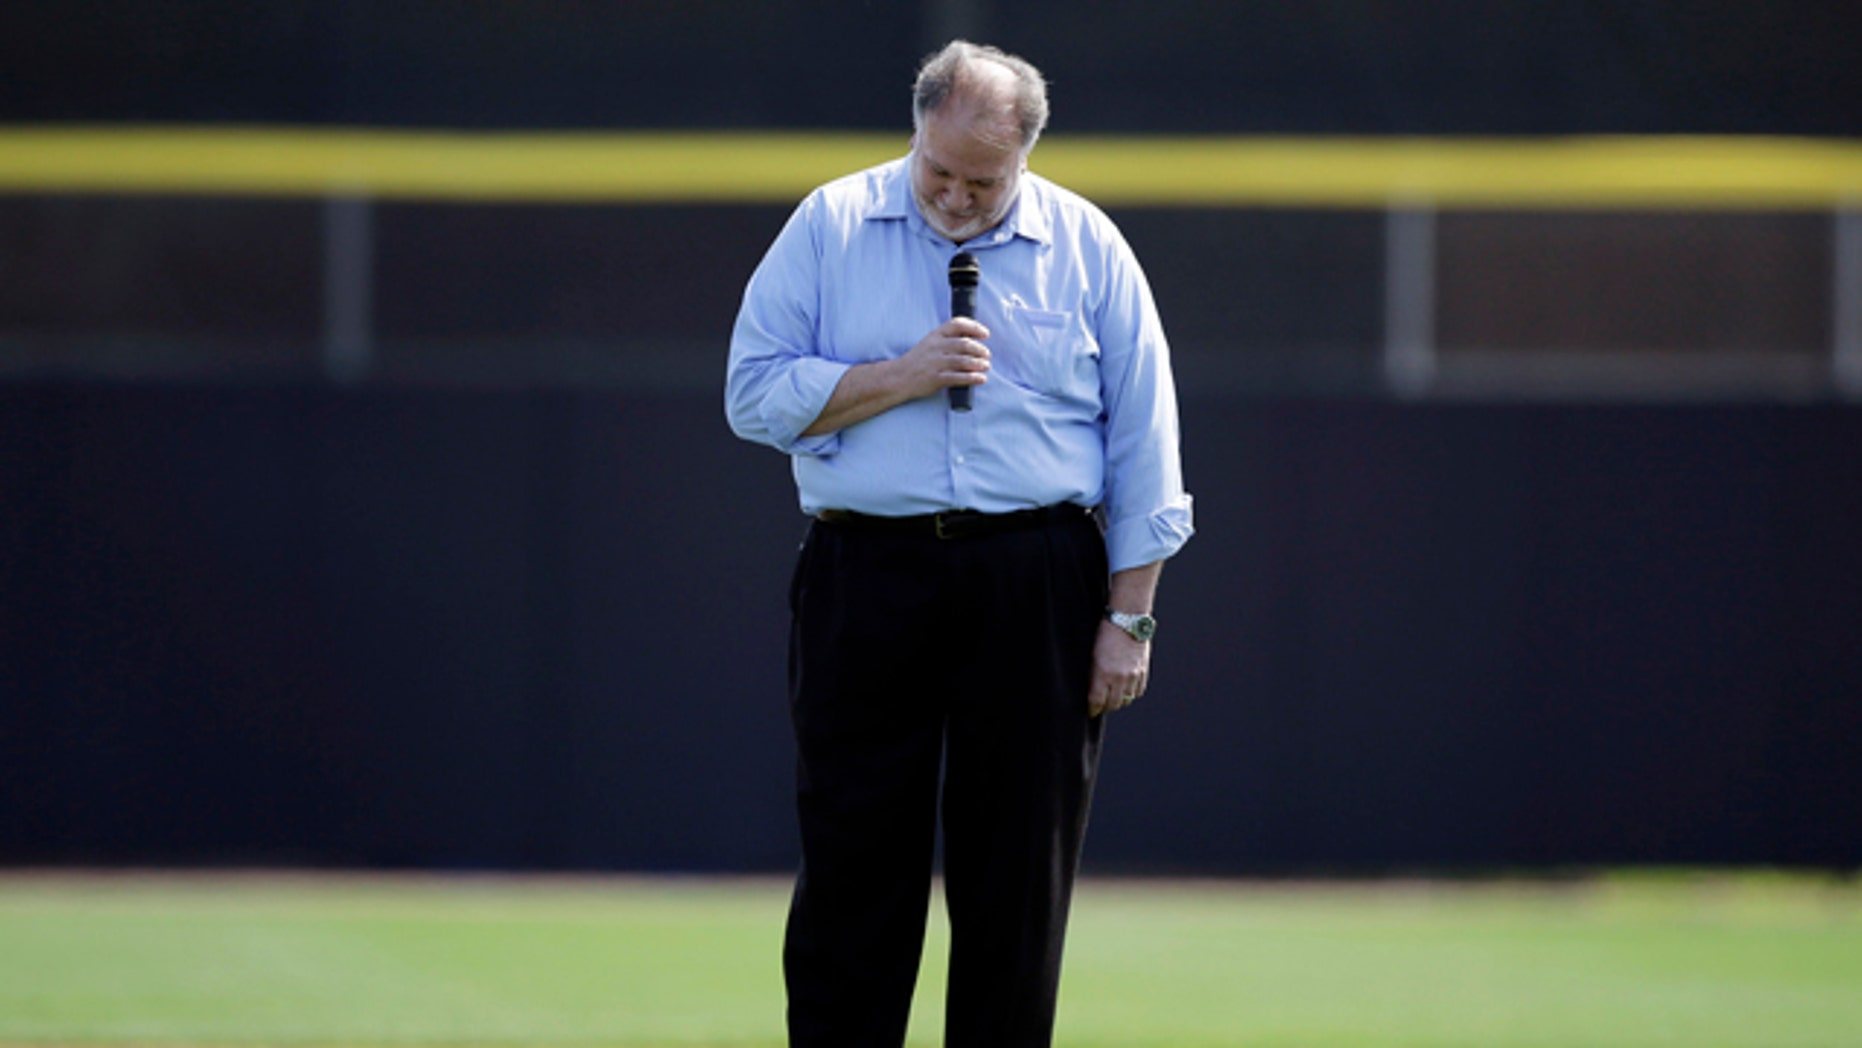 Feb. 27, 2013: Singer Jeff Fuller reacts after forgetting lyrics to the Canadian national anthem before an exhibition baseball game between the Toronto Blue Jays and the Houston Astros.